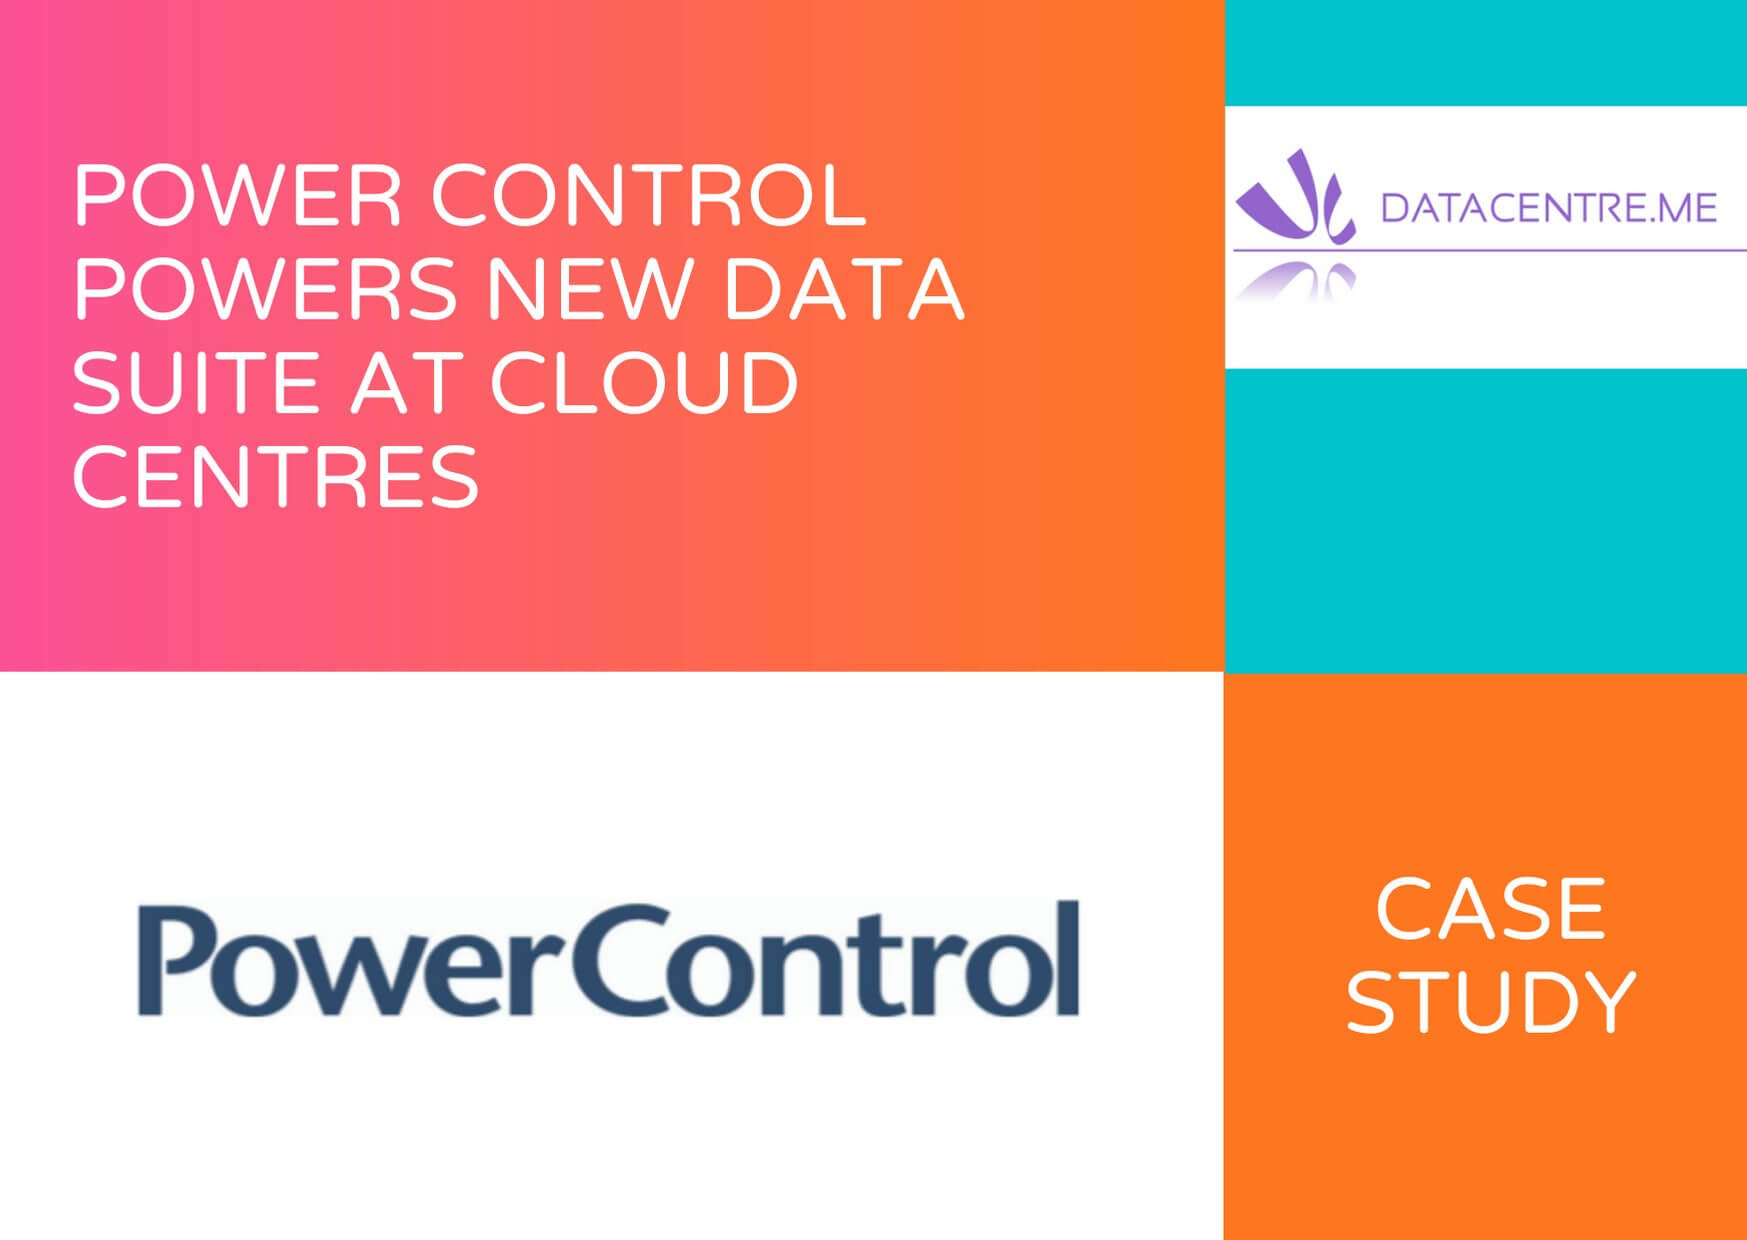 POWER CONTROL POWERS NEW DATA SUITE AT CLOUD CENTRES